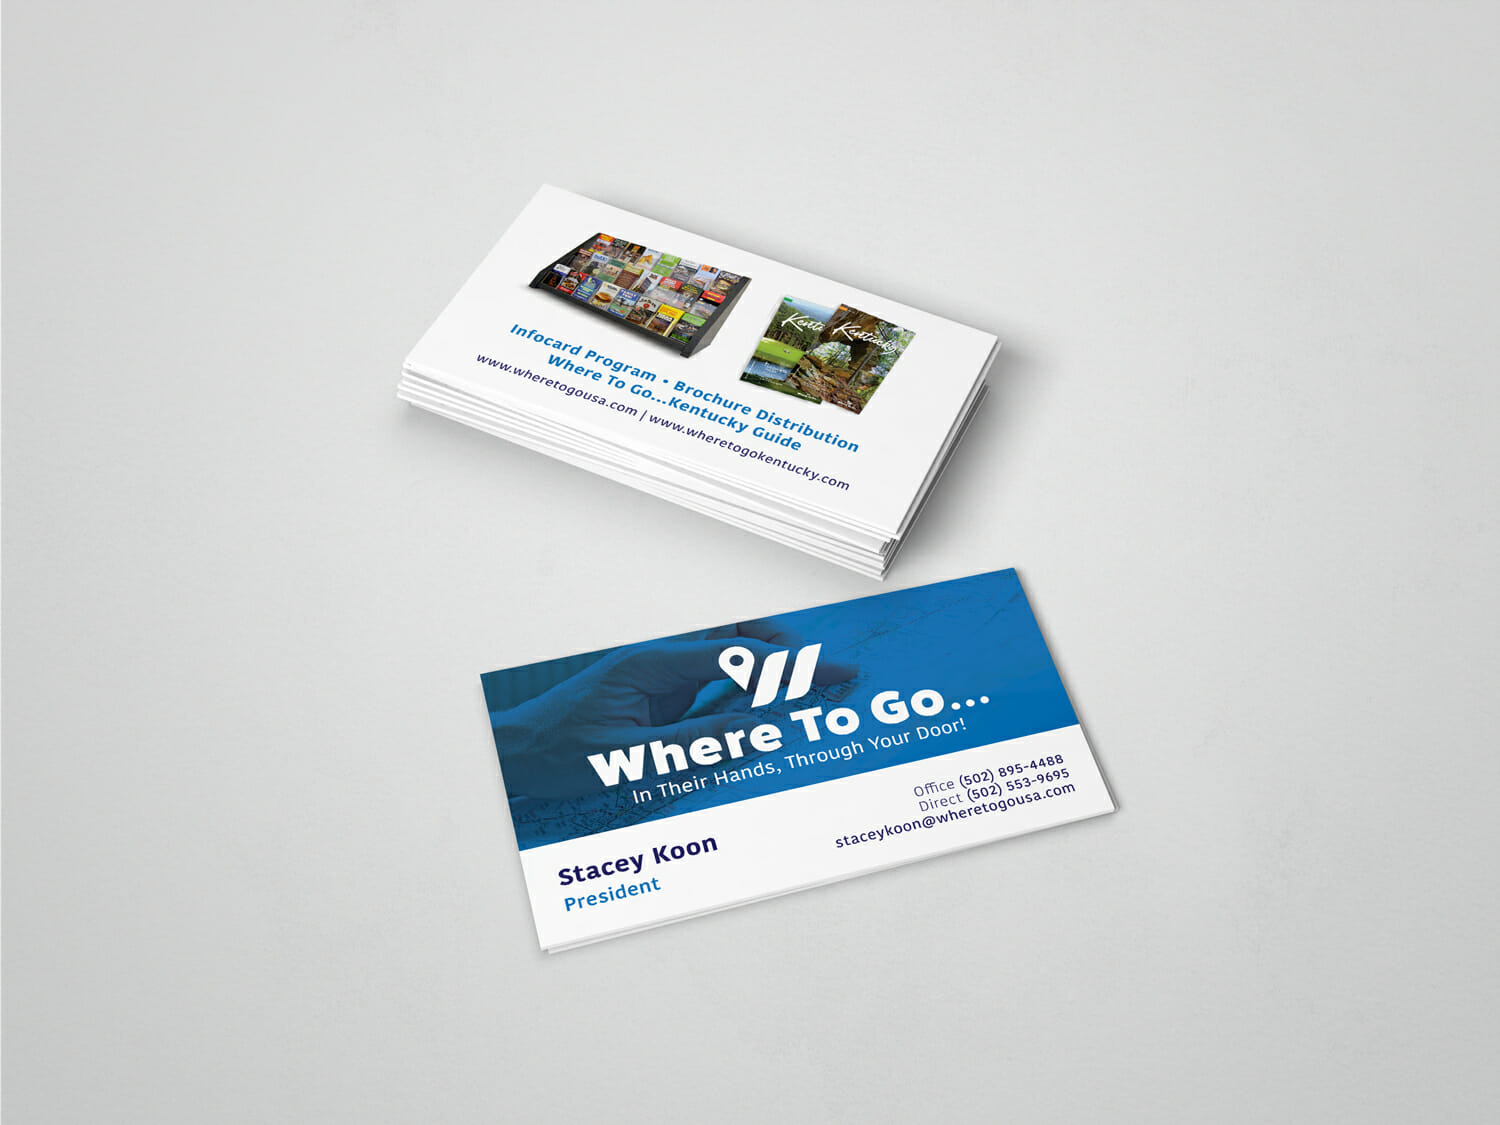 Where-To-Go-Business-Card